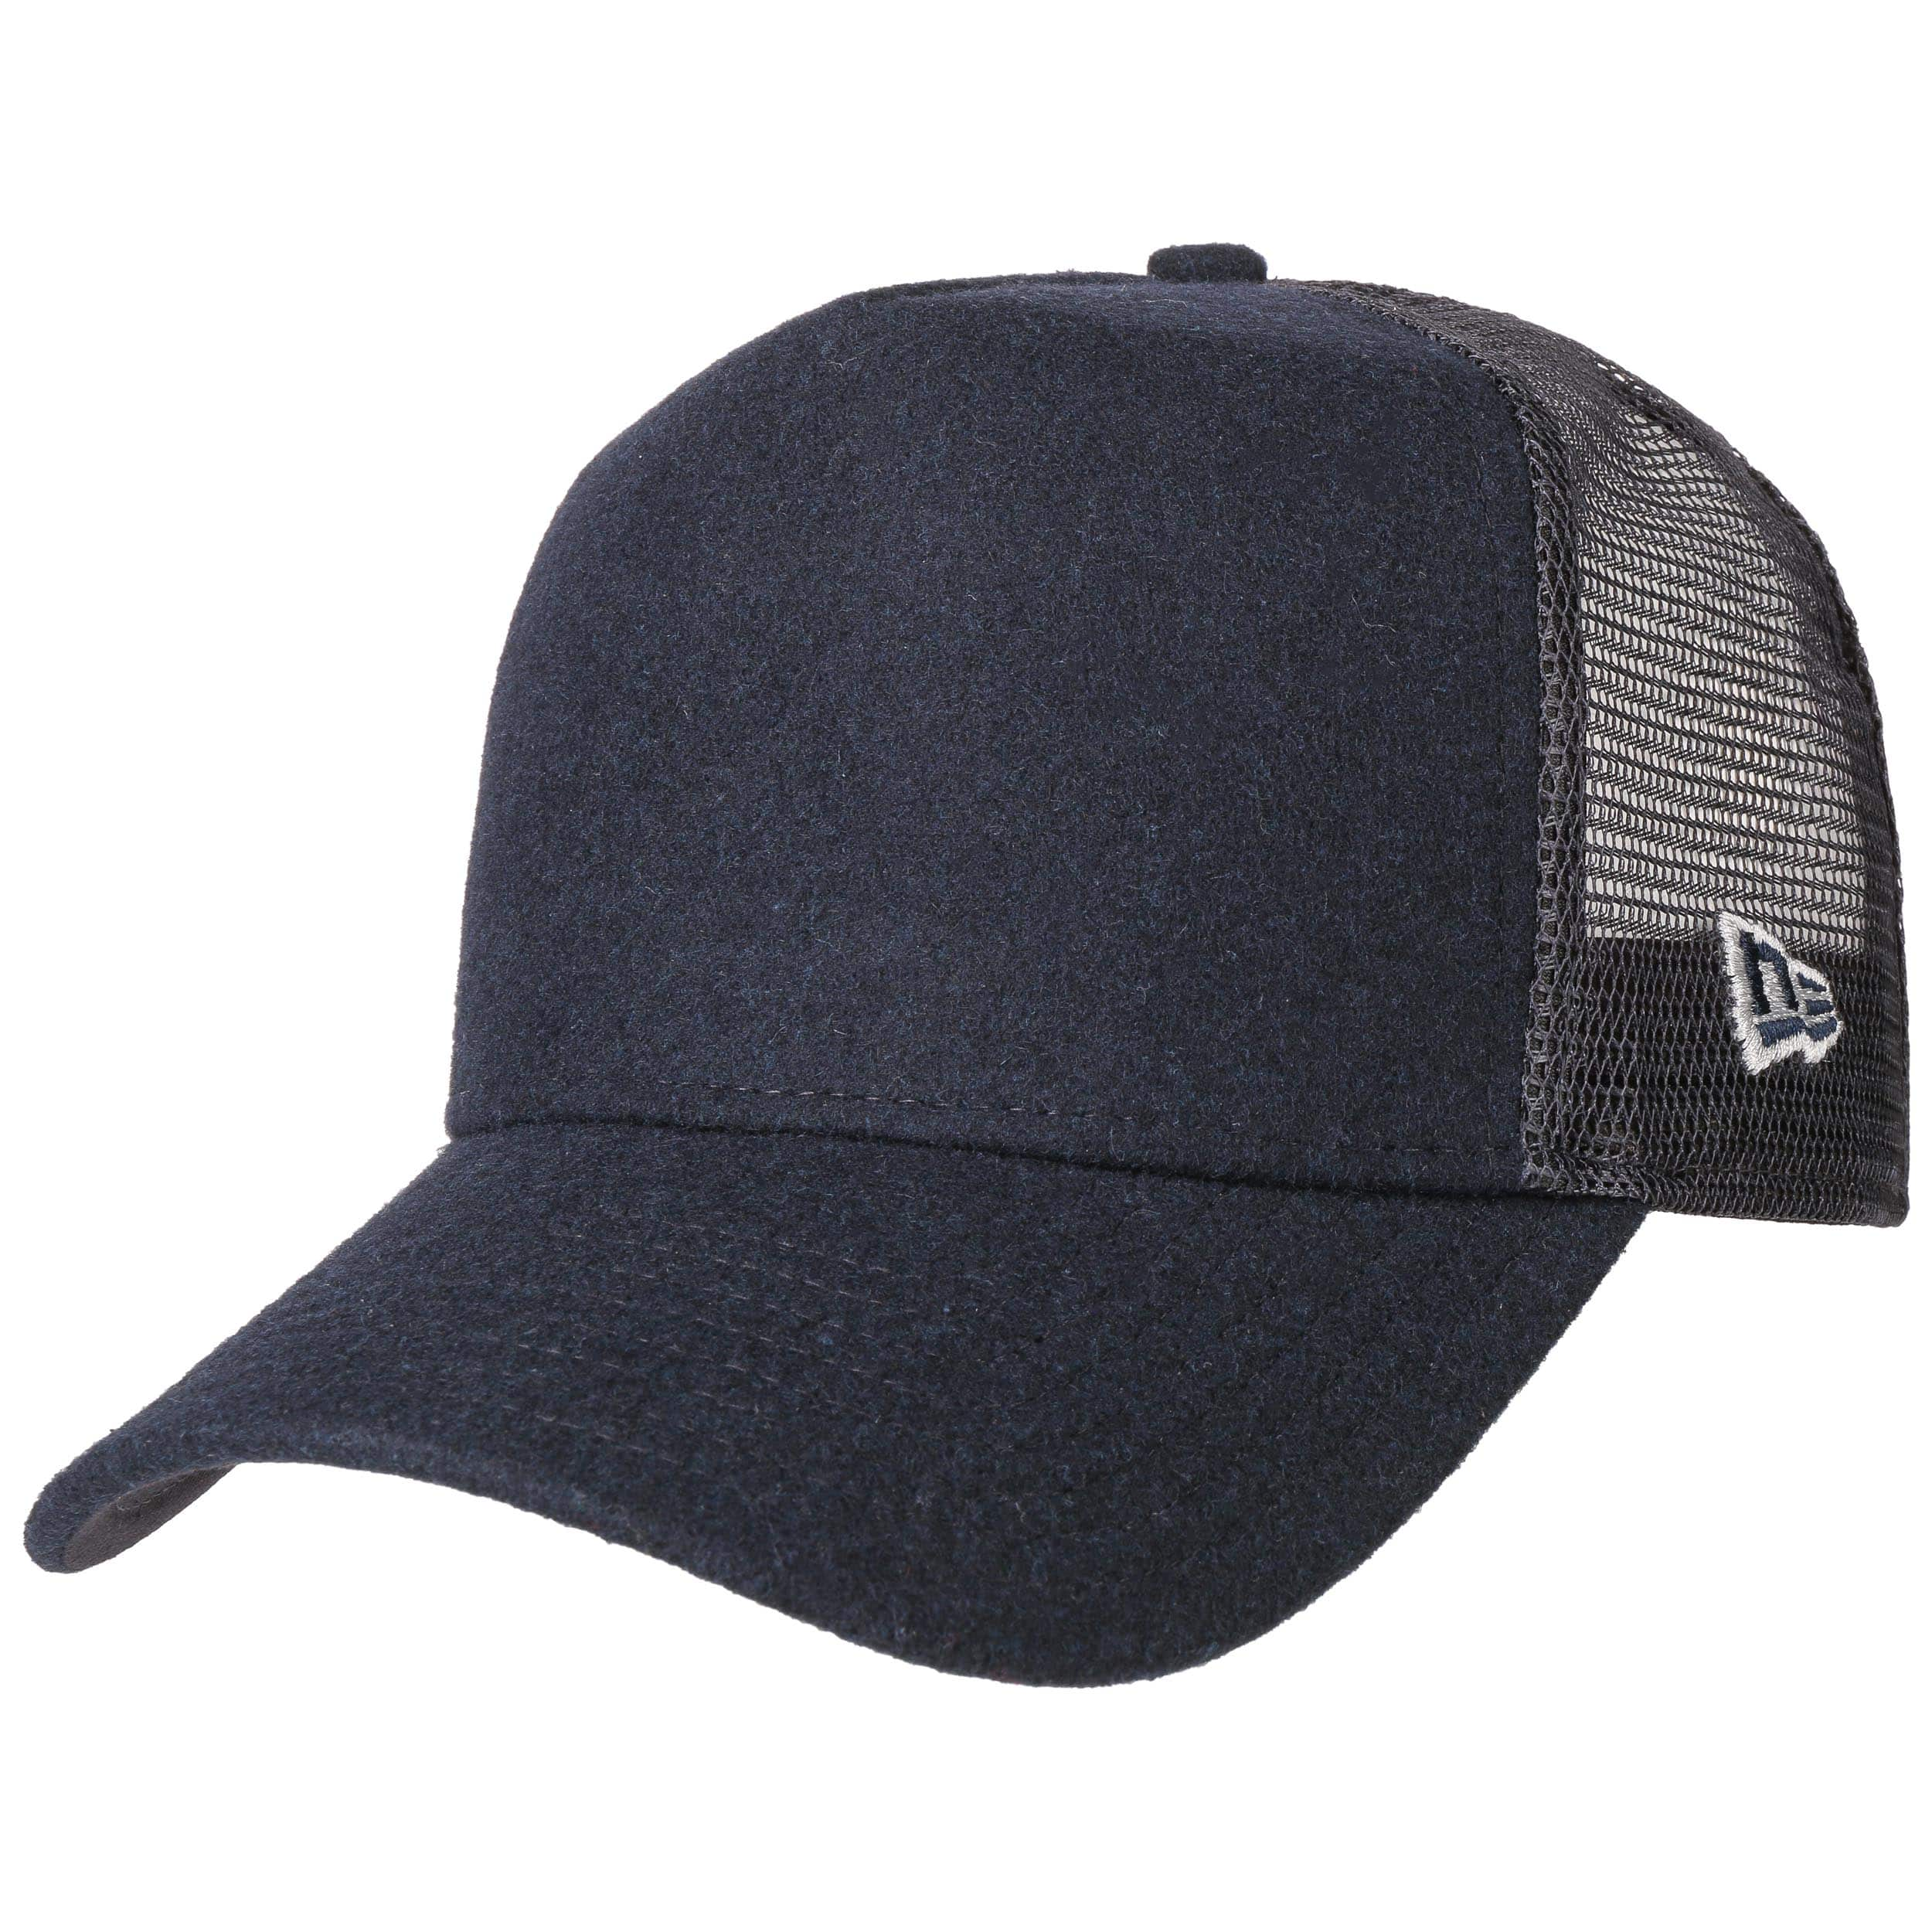 8999e9a2207b5 ... Casquette Trucker Winter Melton by New Era - bleu foncé 5 ...